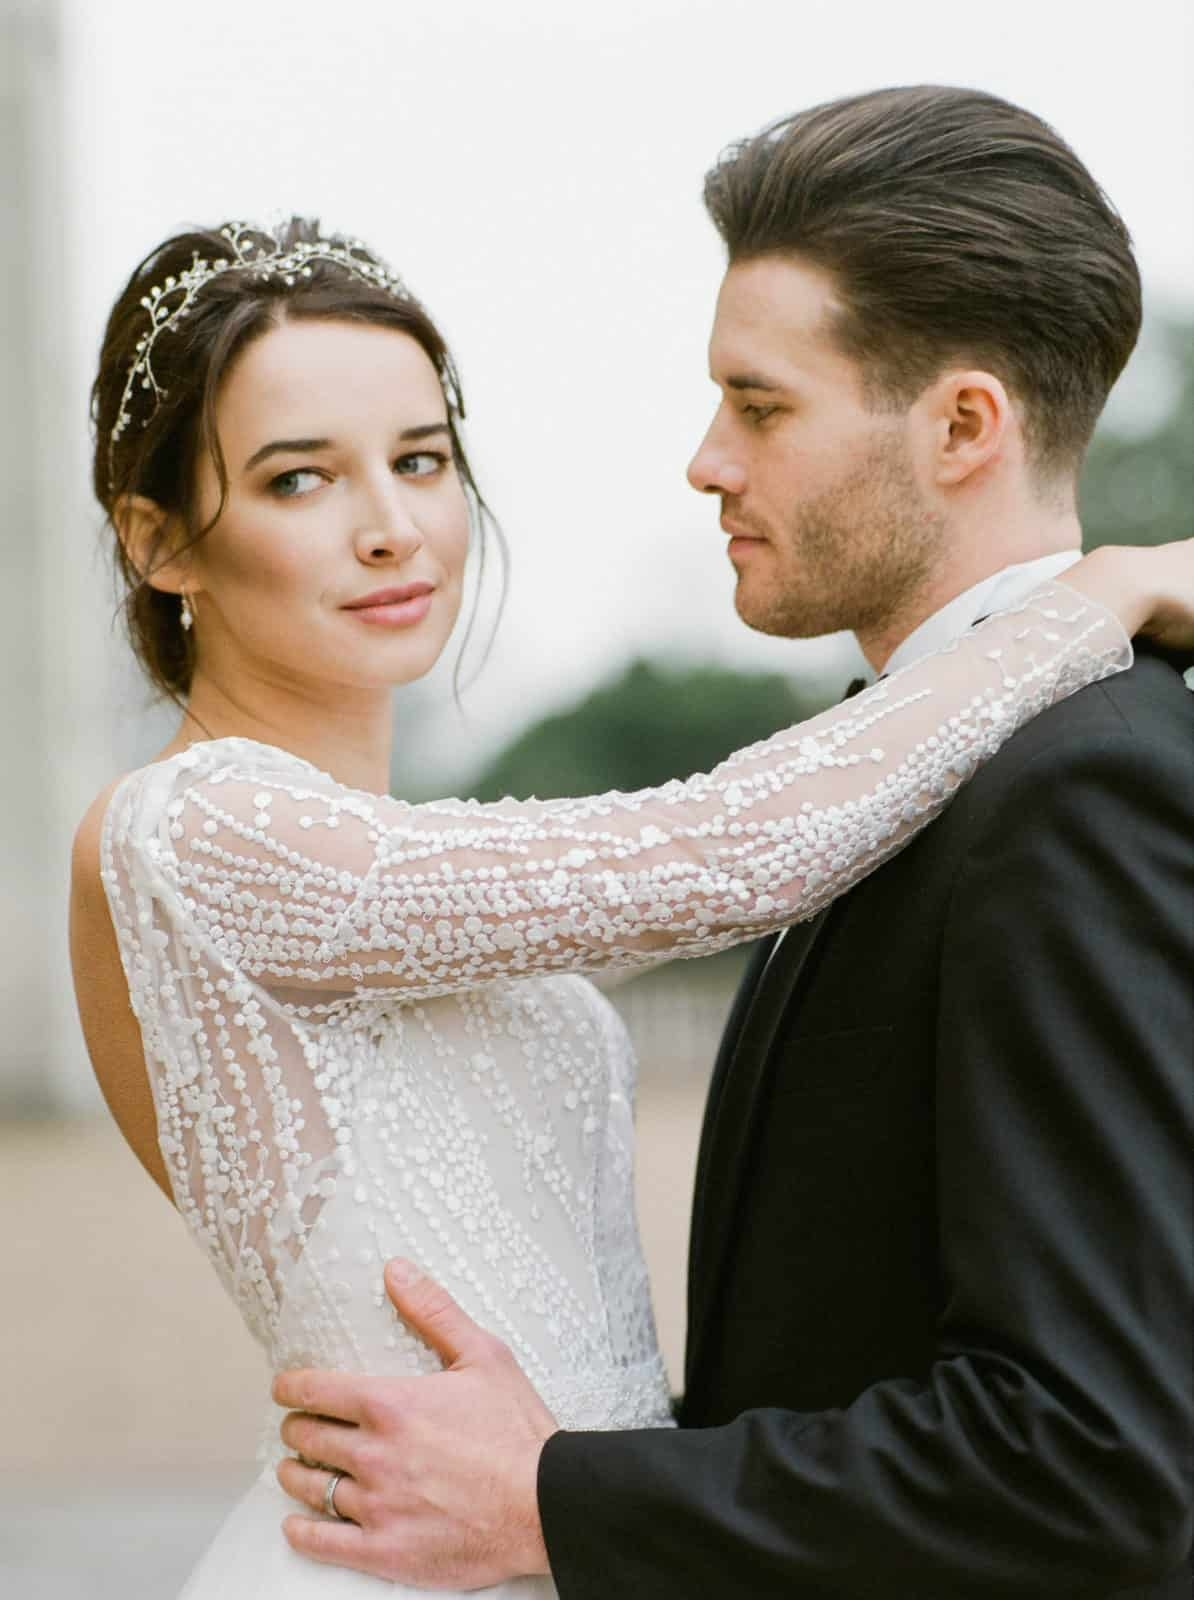 portrait of bride with long sleeved dress and groom